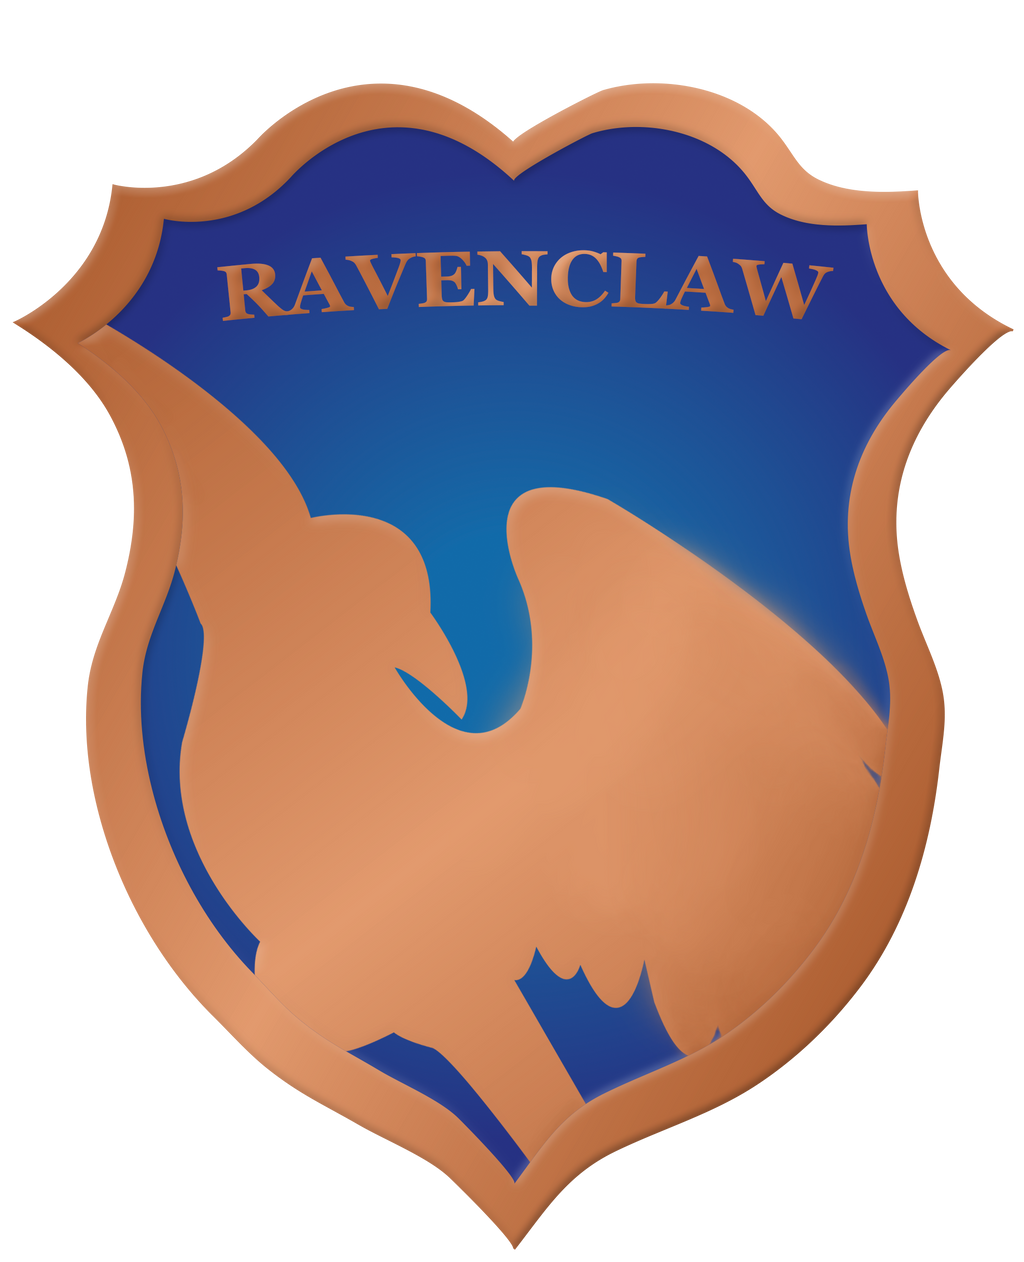 Ravenclaw Crest Badge by rainbowrenly on DeviantArt